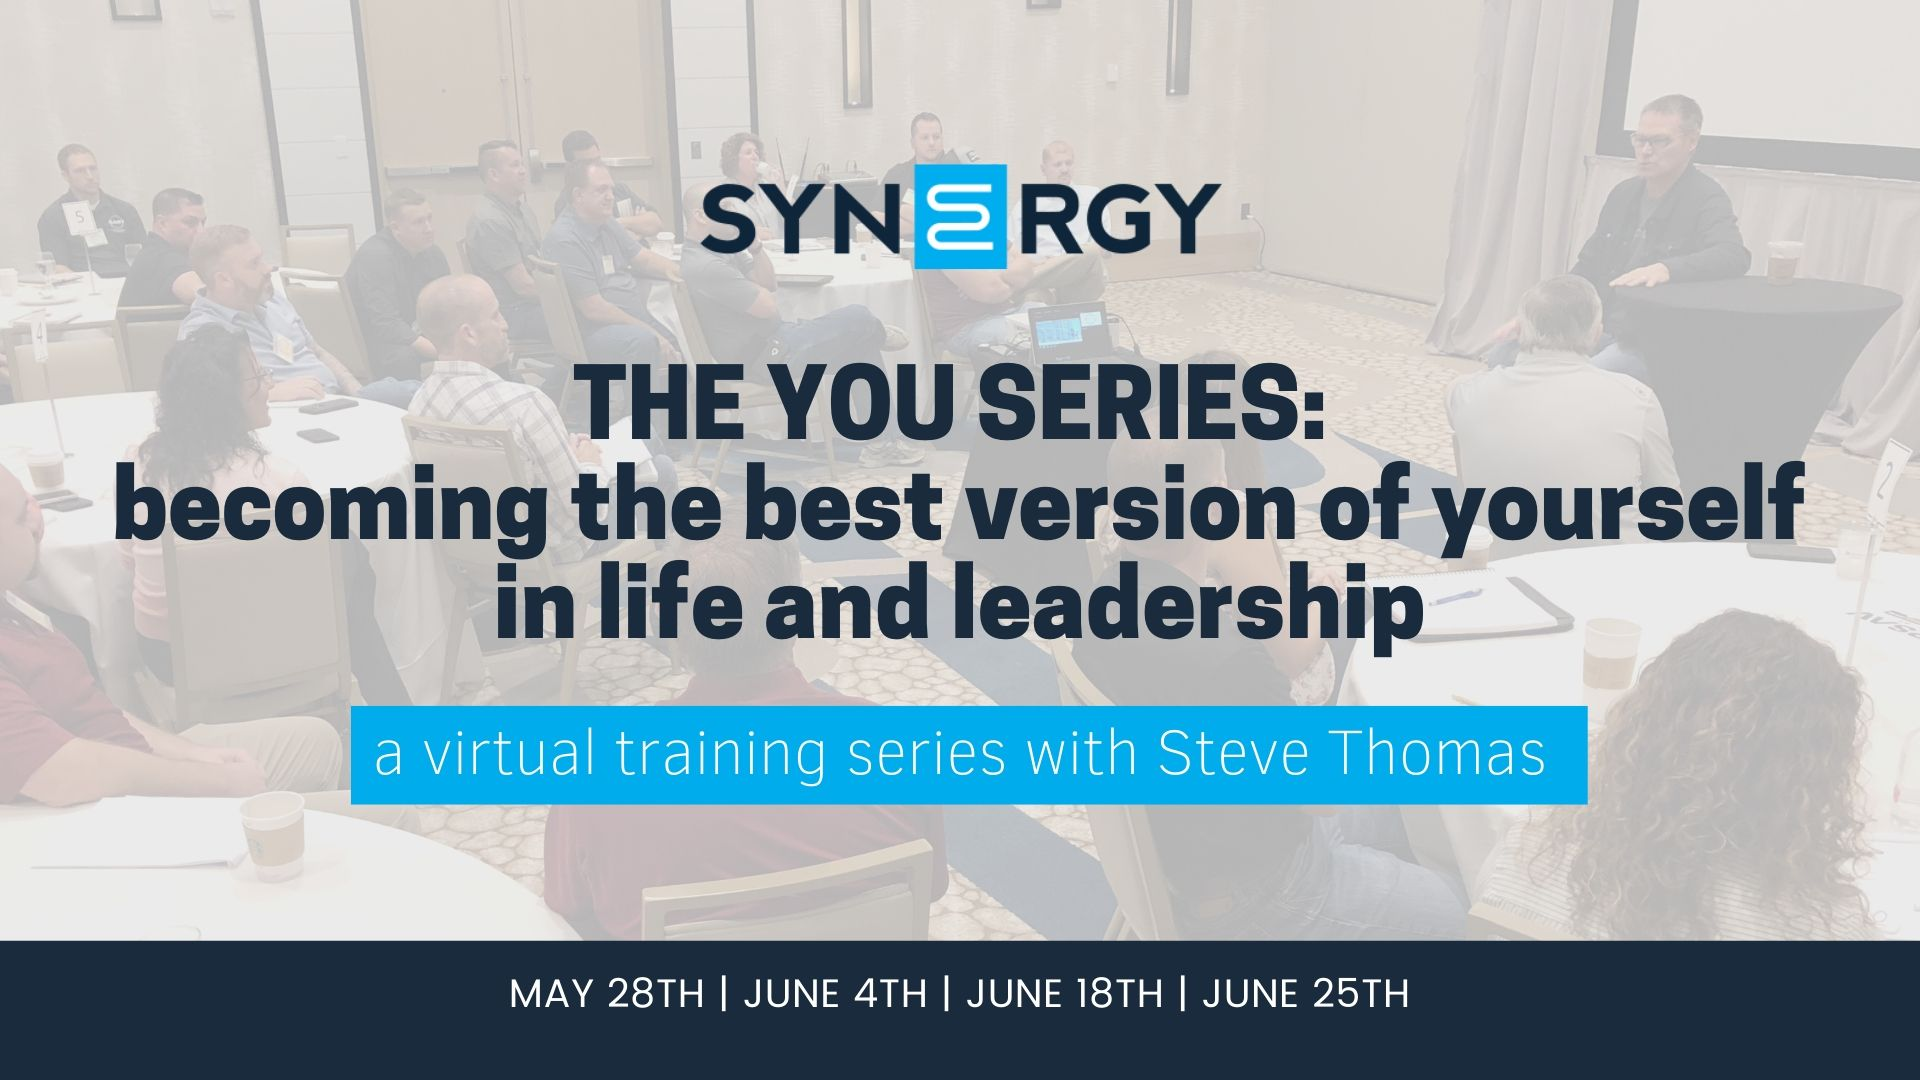 Synergy Kicks Off You Series with Steve Thomas | Virtual Training